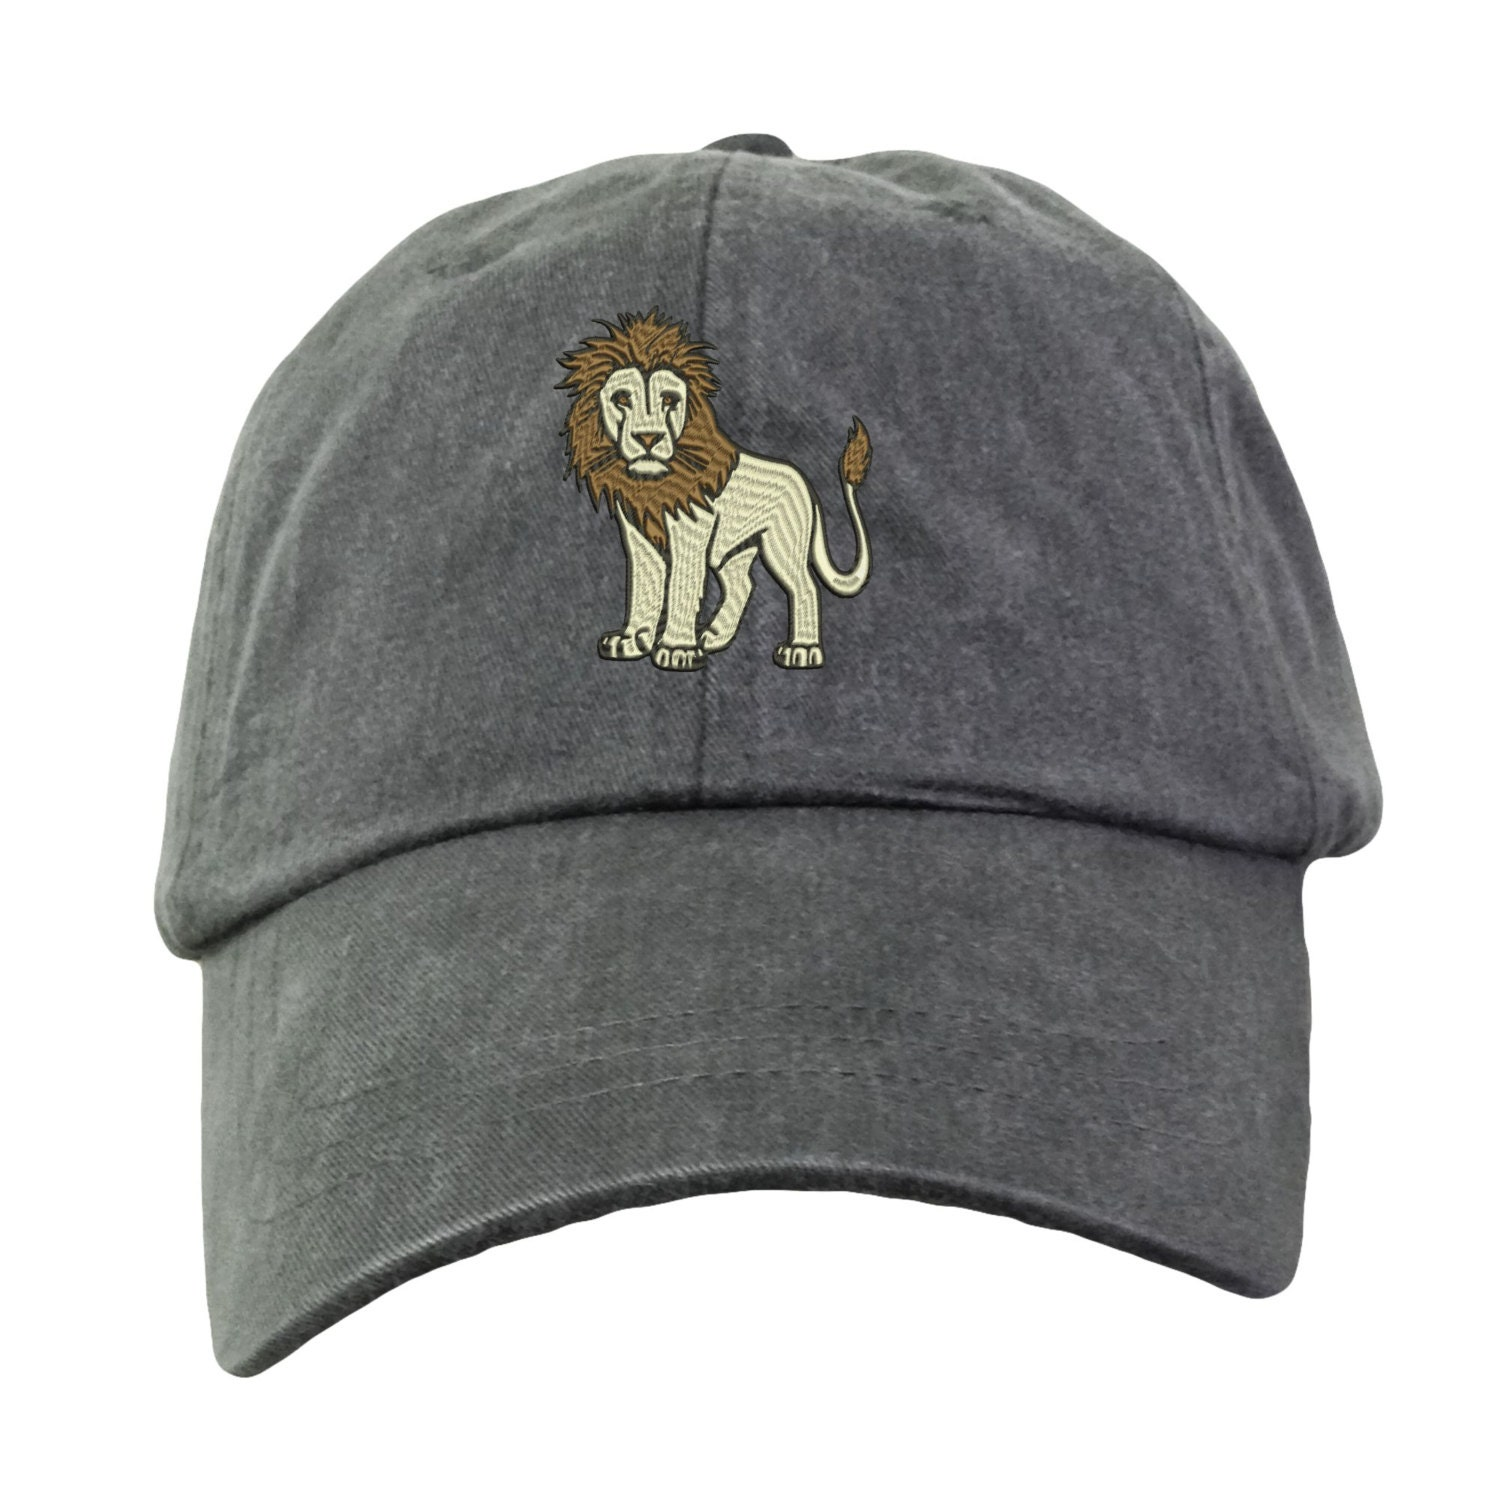 ec8f0fc4b34 Lion Hat Embroidered. Lion Cap. Zoo Jungle Animal Hat. King